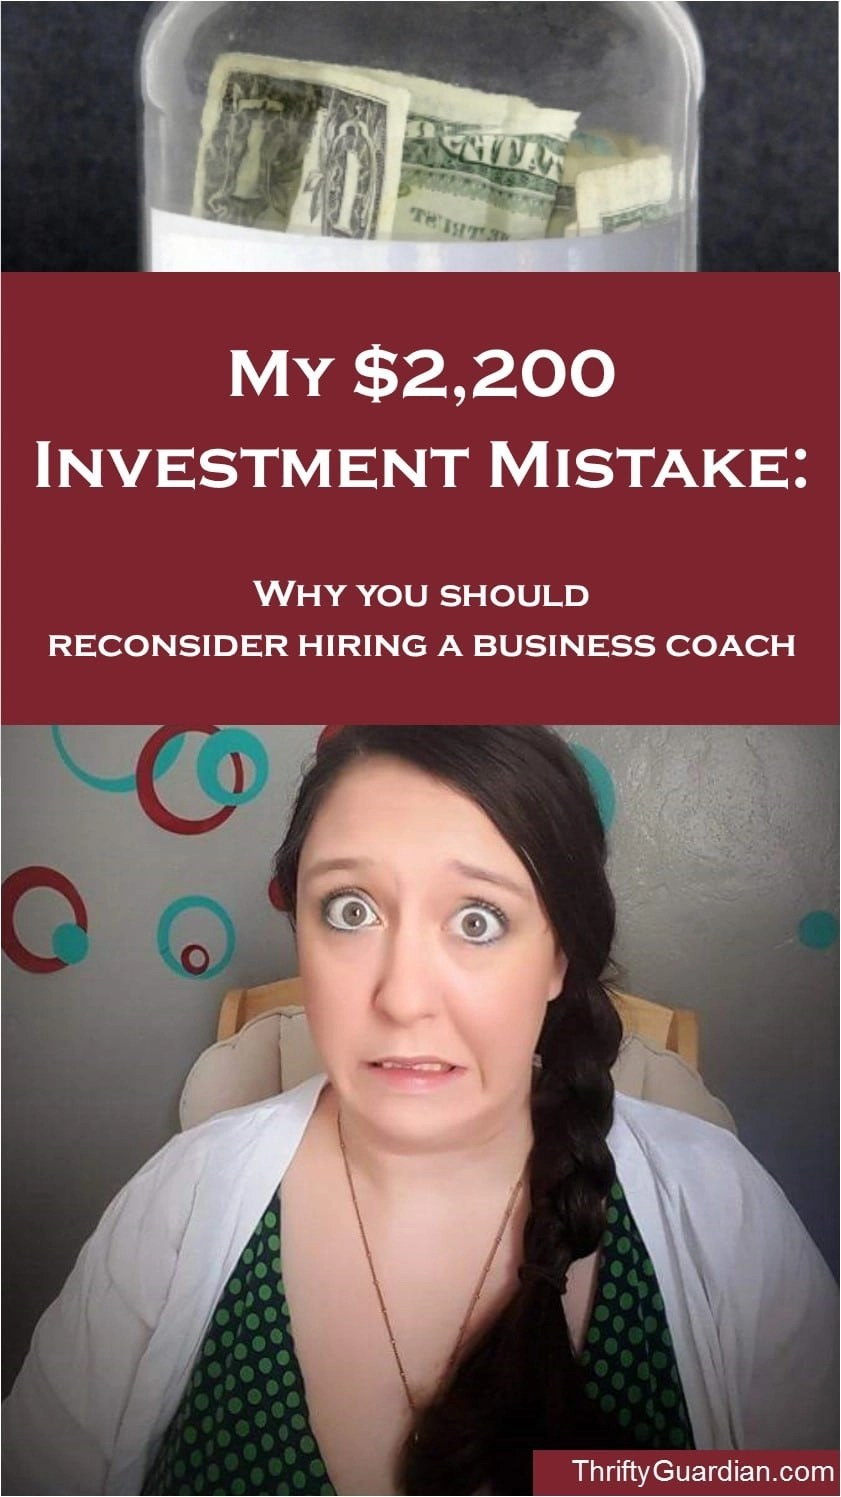 My $2,200 Investment Mistake